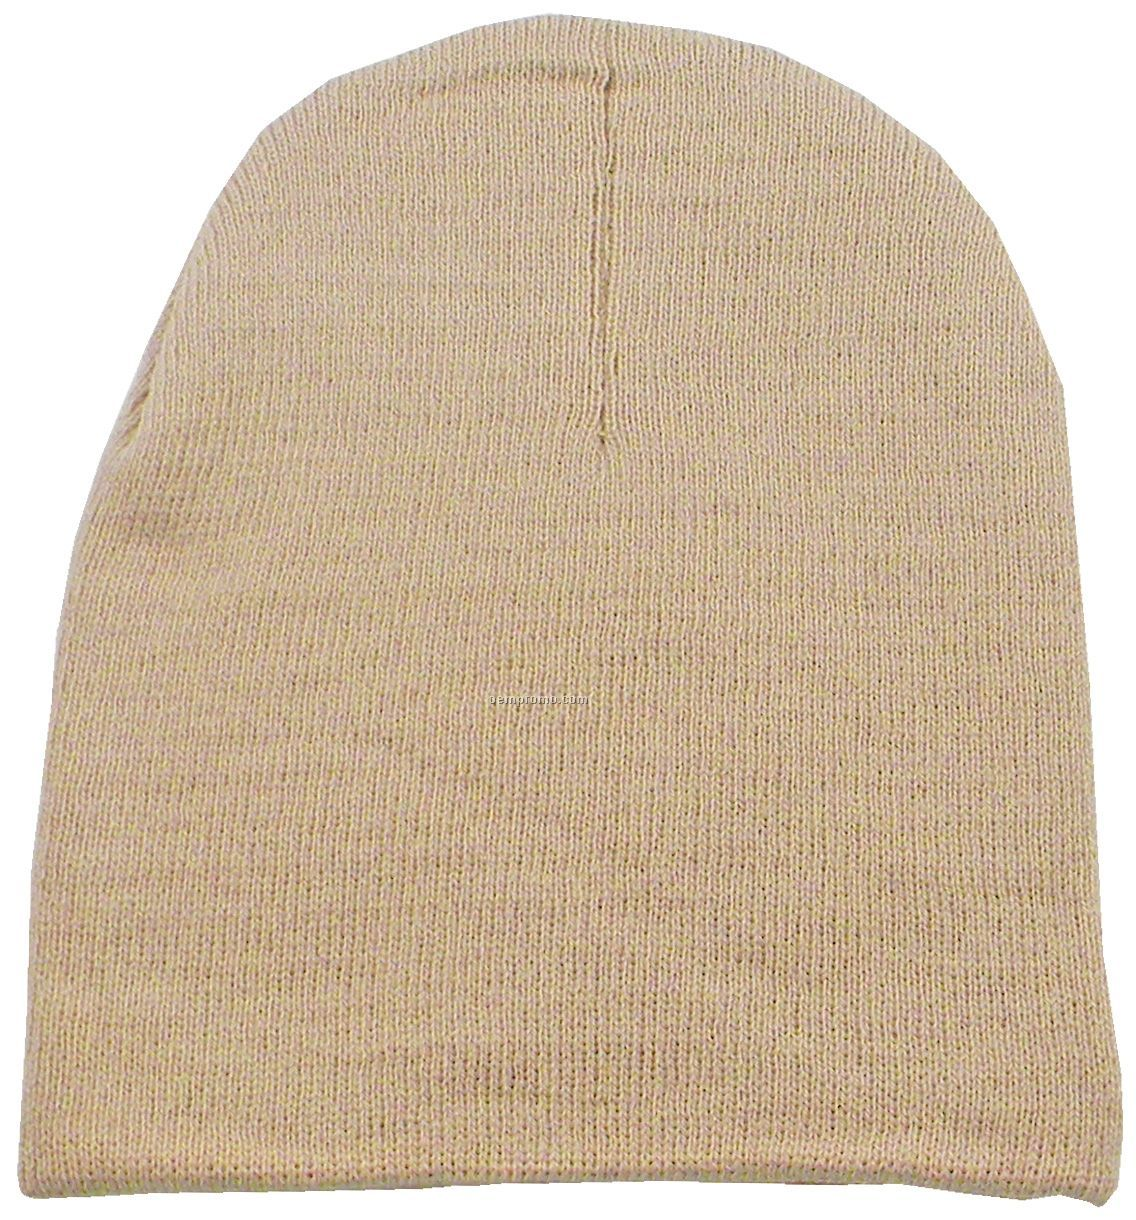 Short Knit Beanie Hat (Domestic 5 Day Delivery)